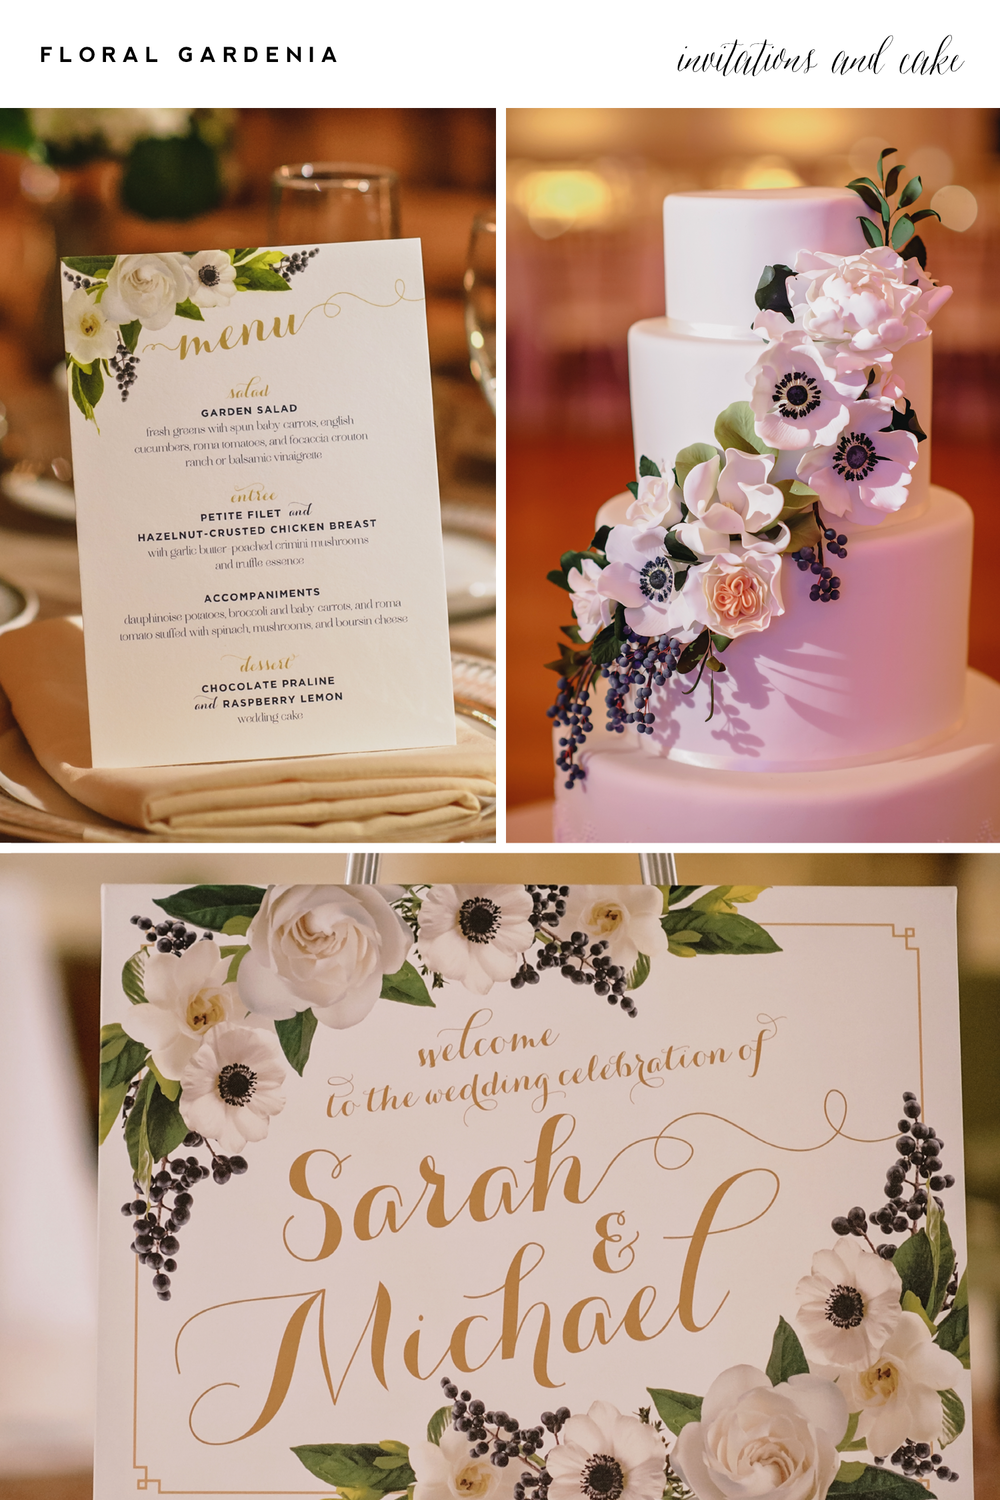 Alisa Bobzien  . stationery |   Jess + Nate Studios  , photography |   Sweet Heather Anne  , cake |   VLD   Events, event design |  Passionflower , floral   This is custom design day-of print material, which I also offer.  More details here.